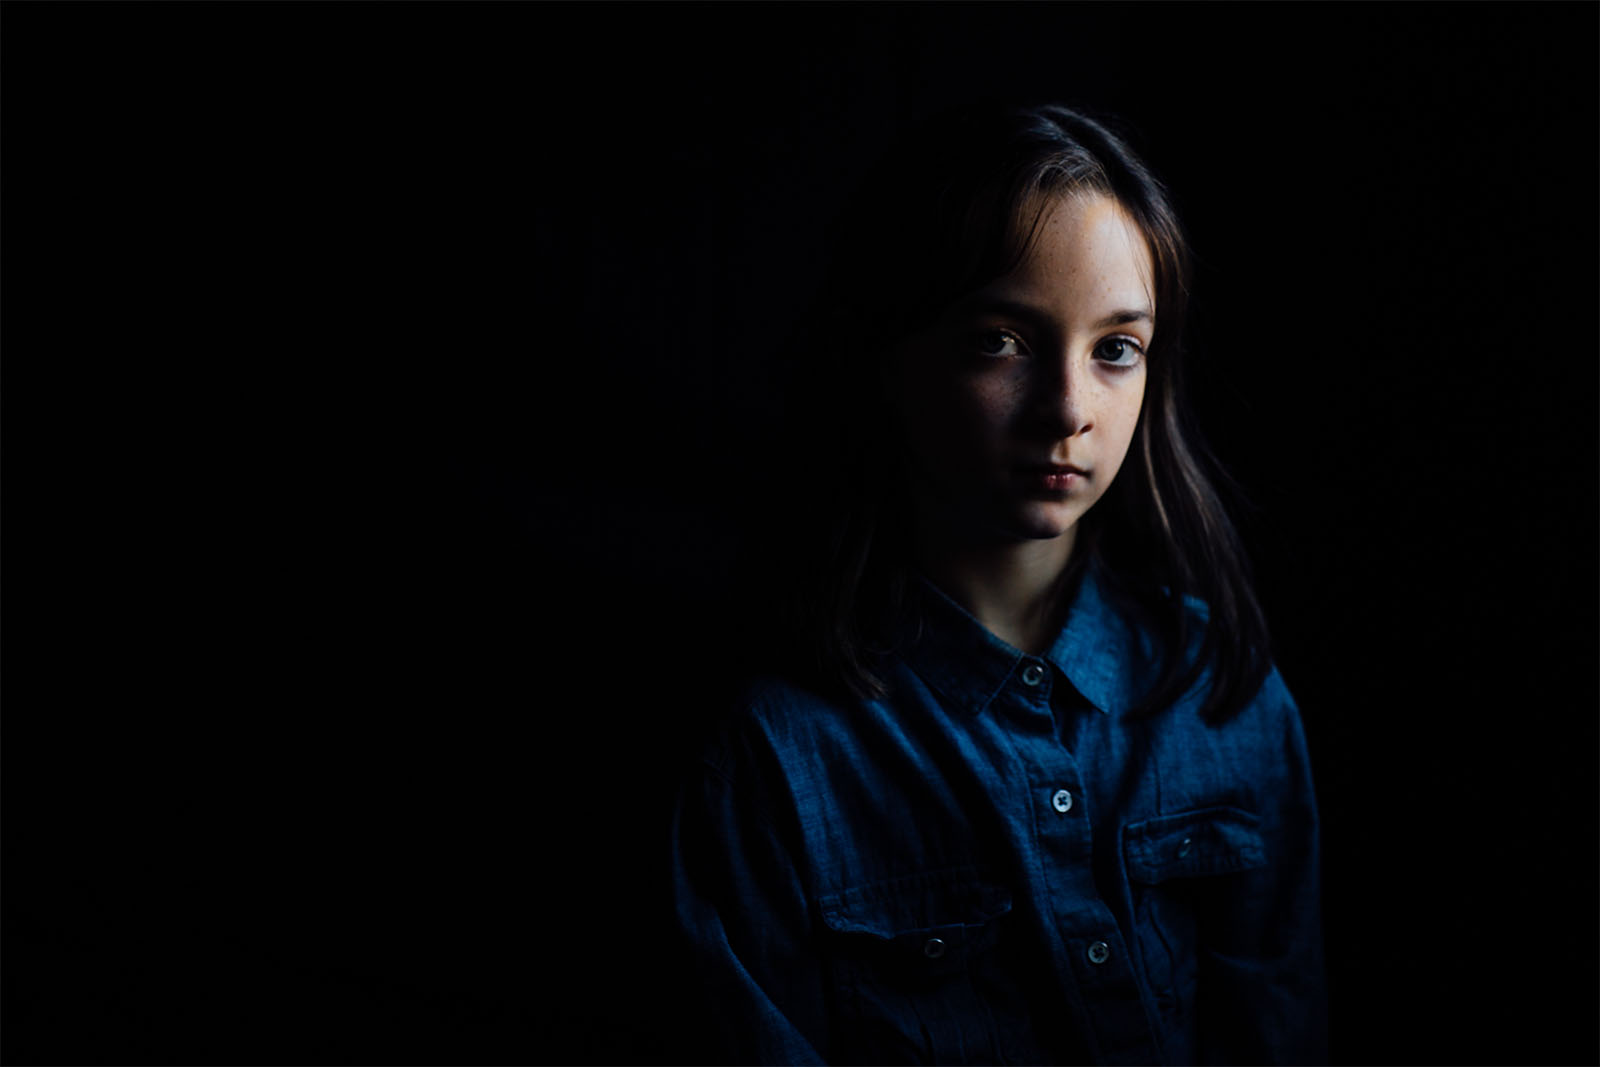 modern day photo with Rembrandt lighting by Lauren Penland 4